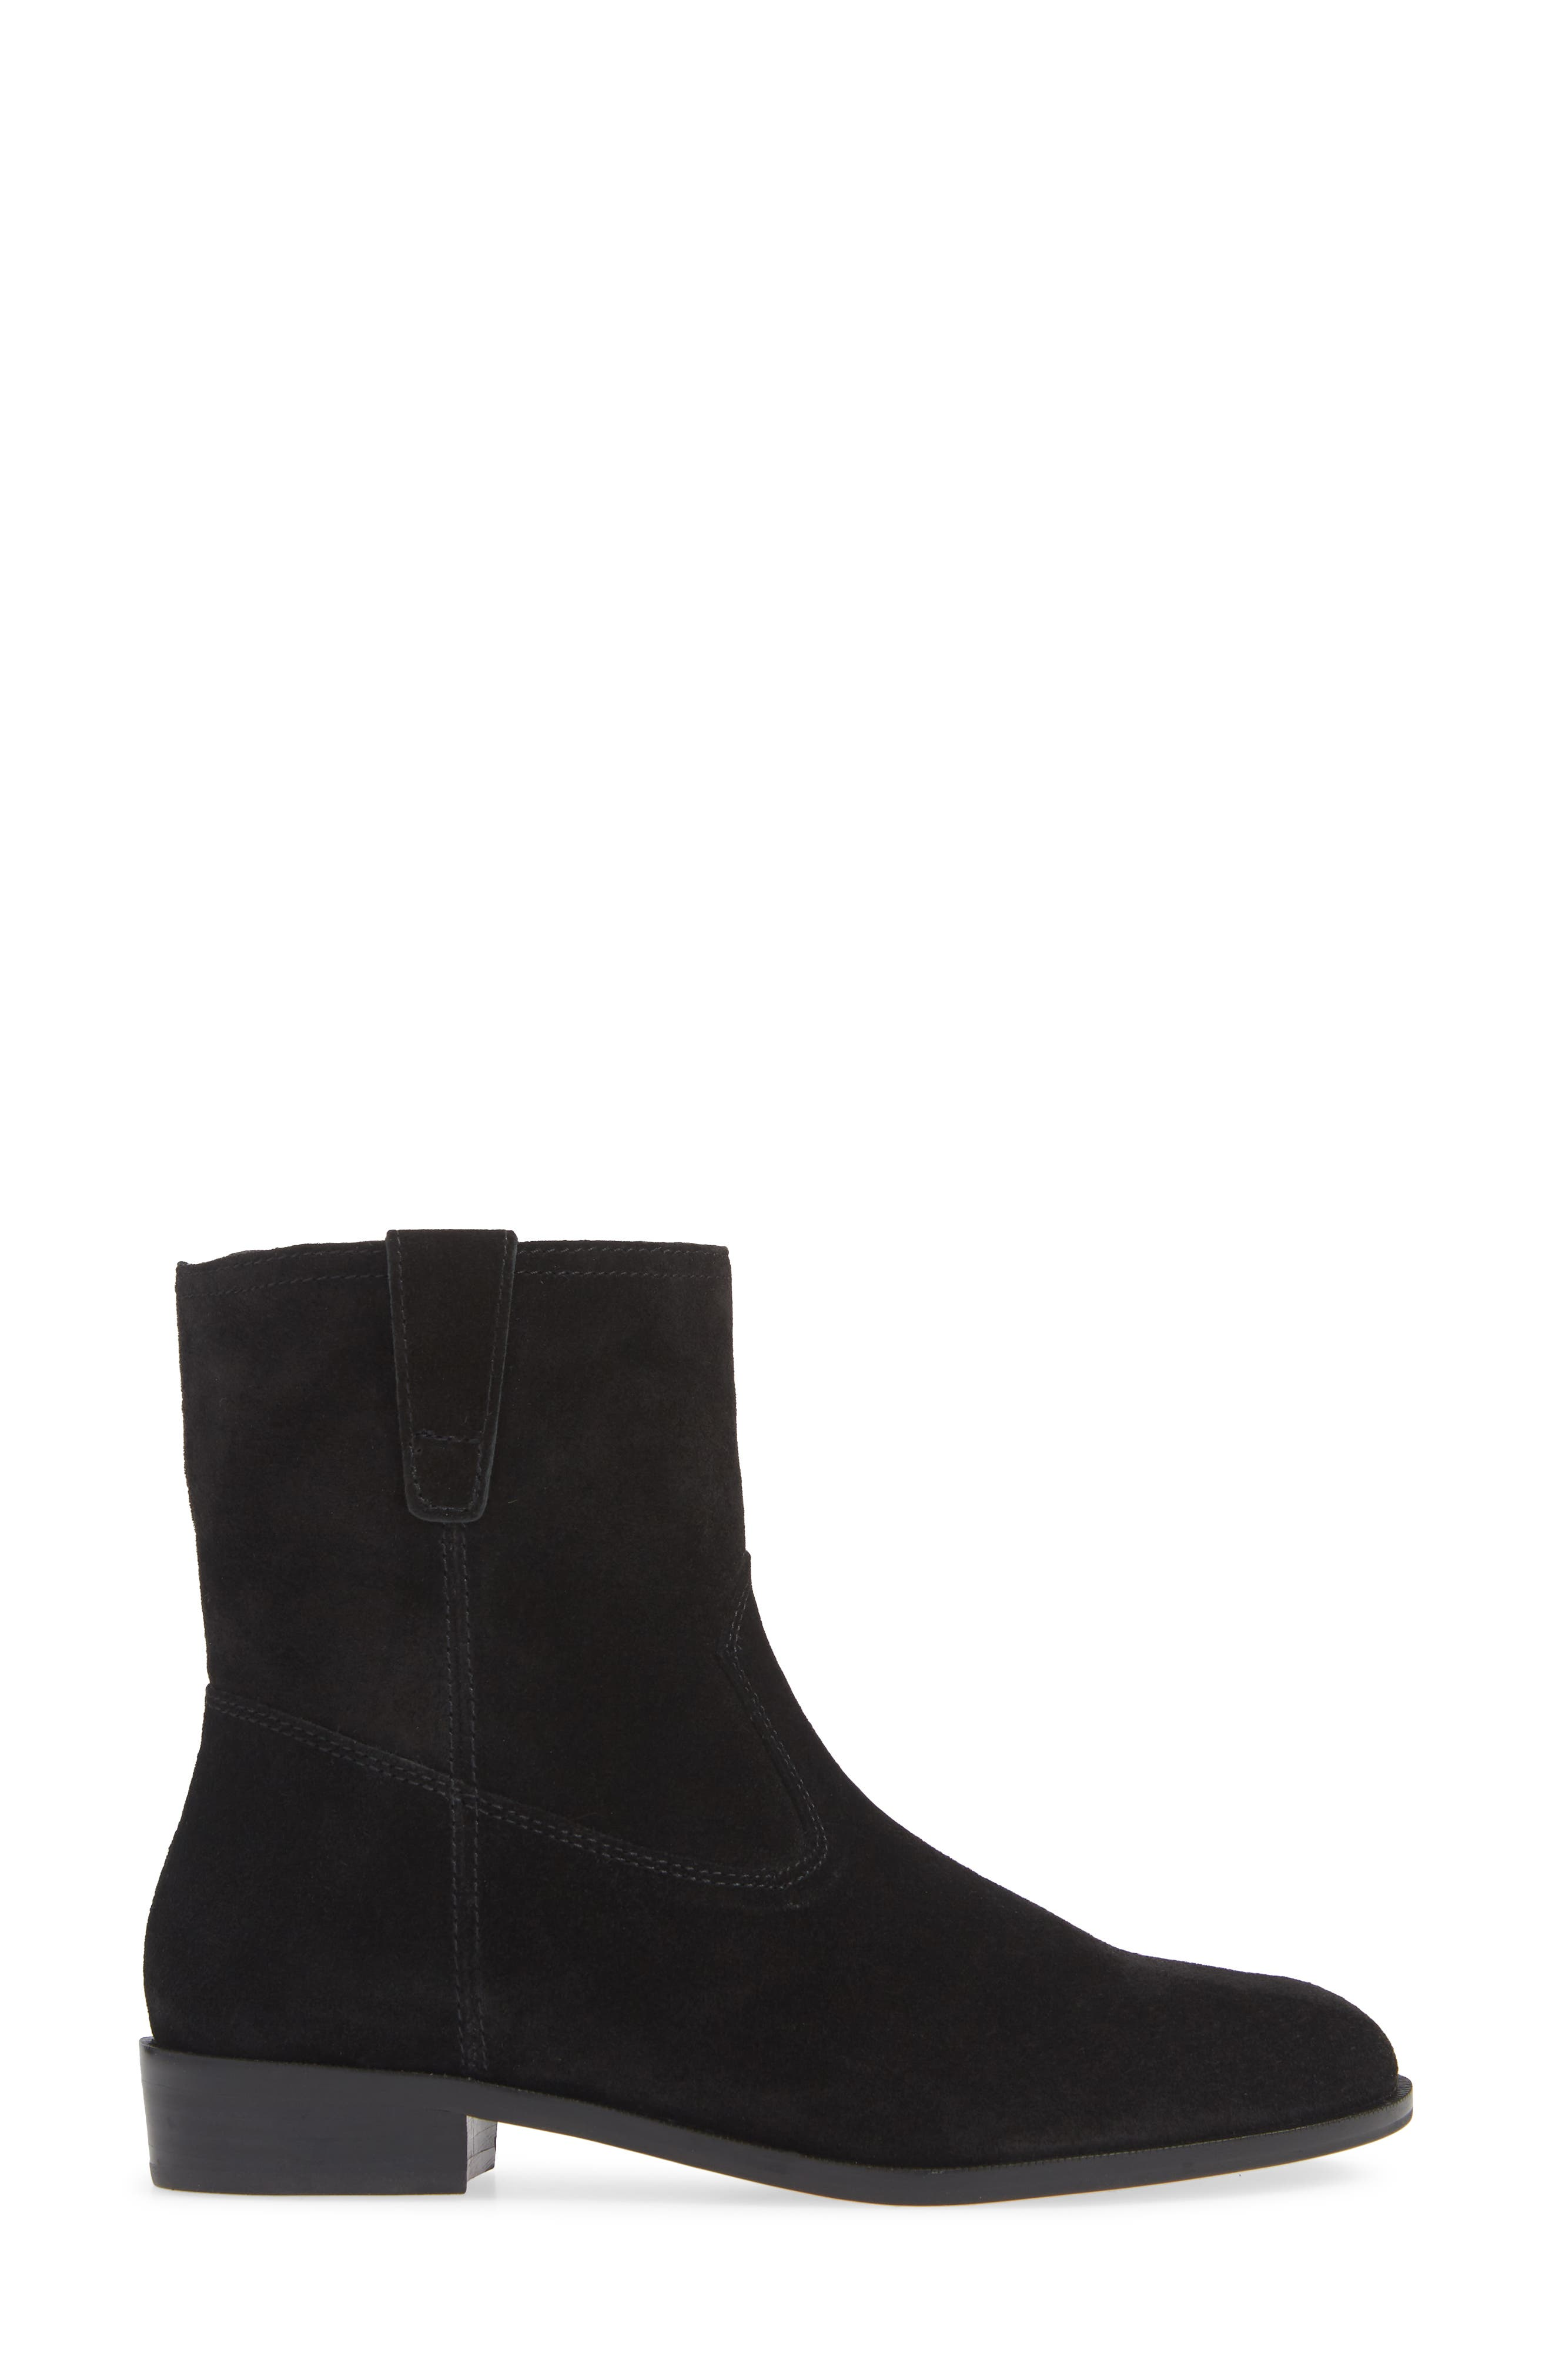 Chasidy Bootie,                             Alternate thumbnail 3, color,                             BLACK SUEDE